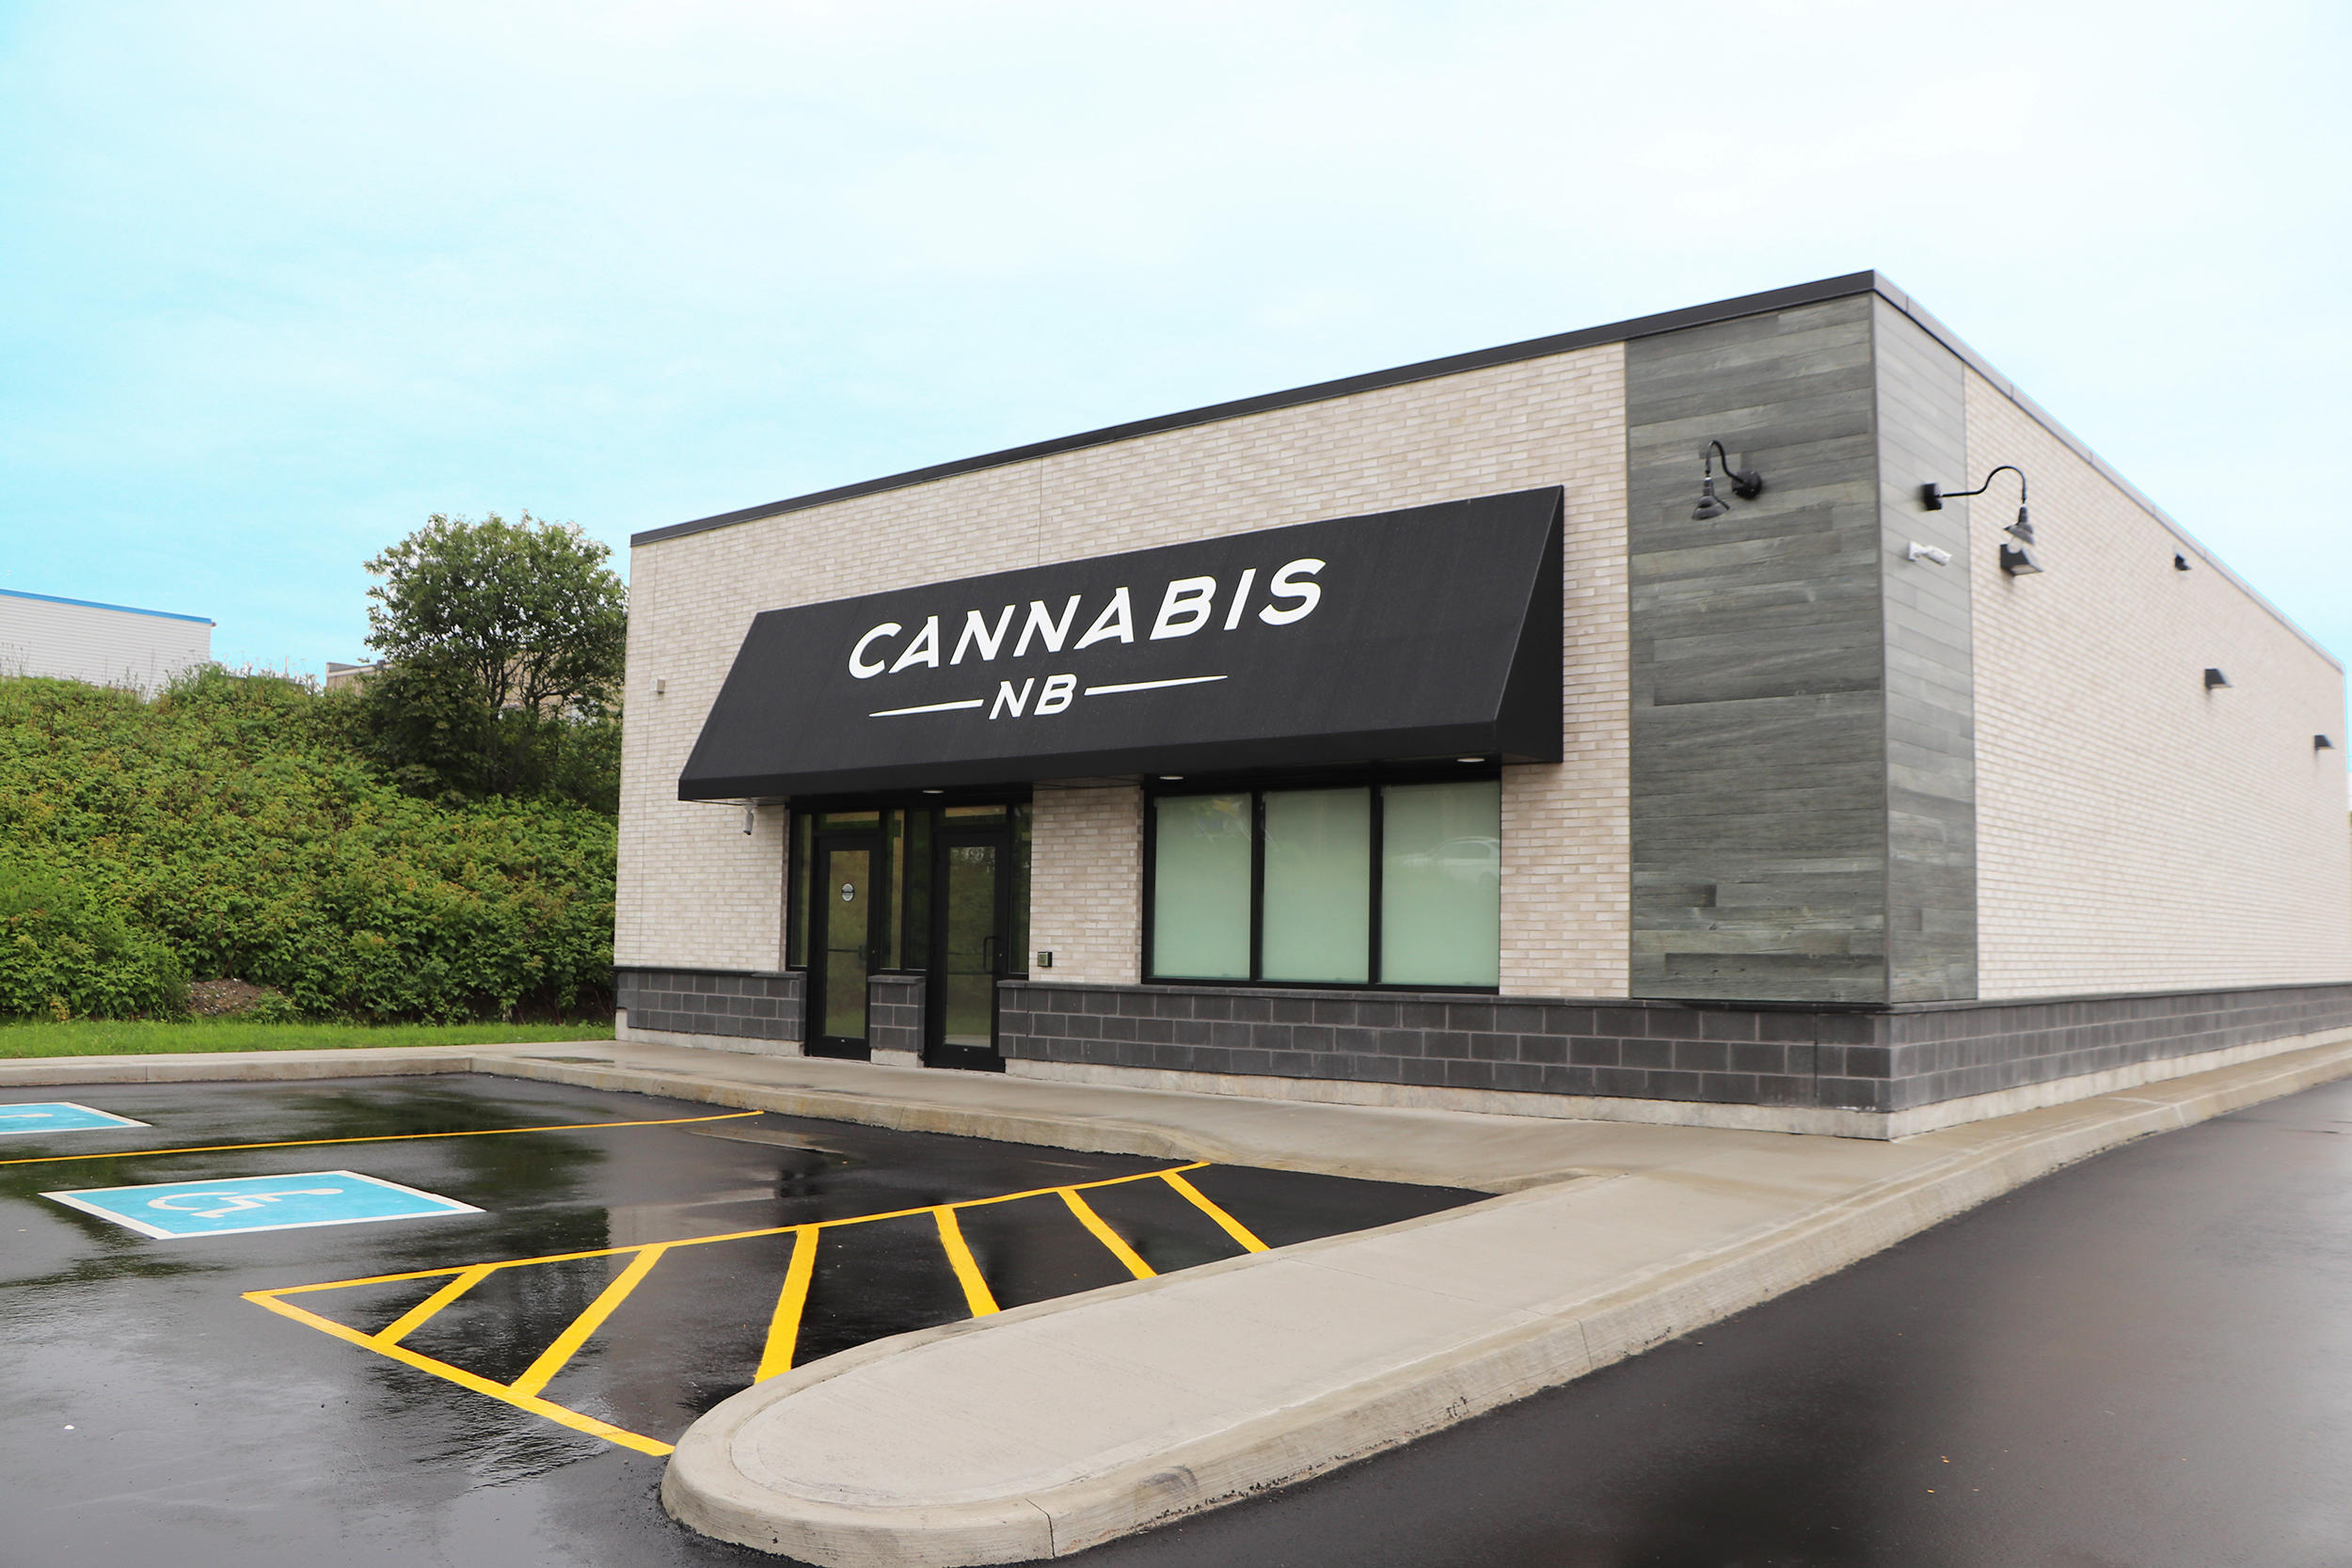 Cannabis NB in Fredericton: Cannabis NB Saint John location on Lansdowne Ave